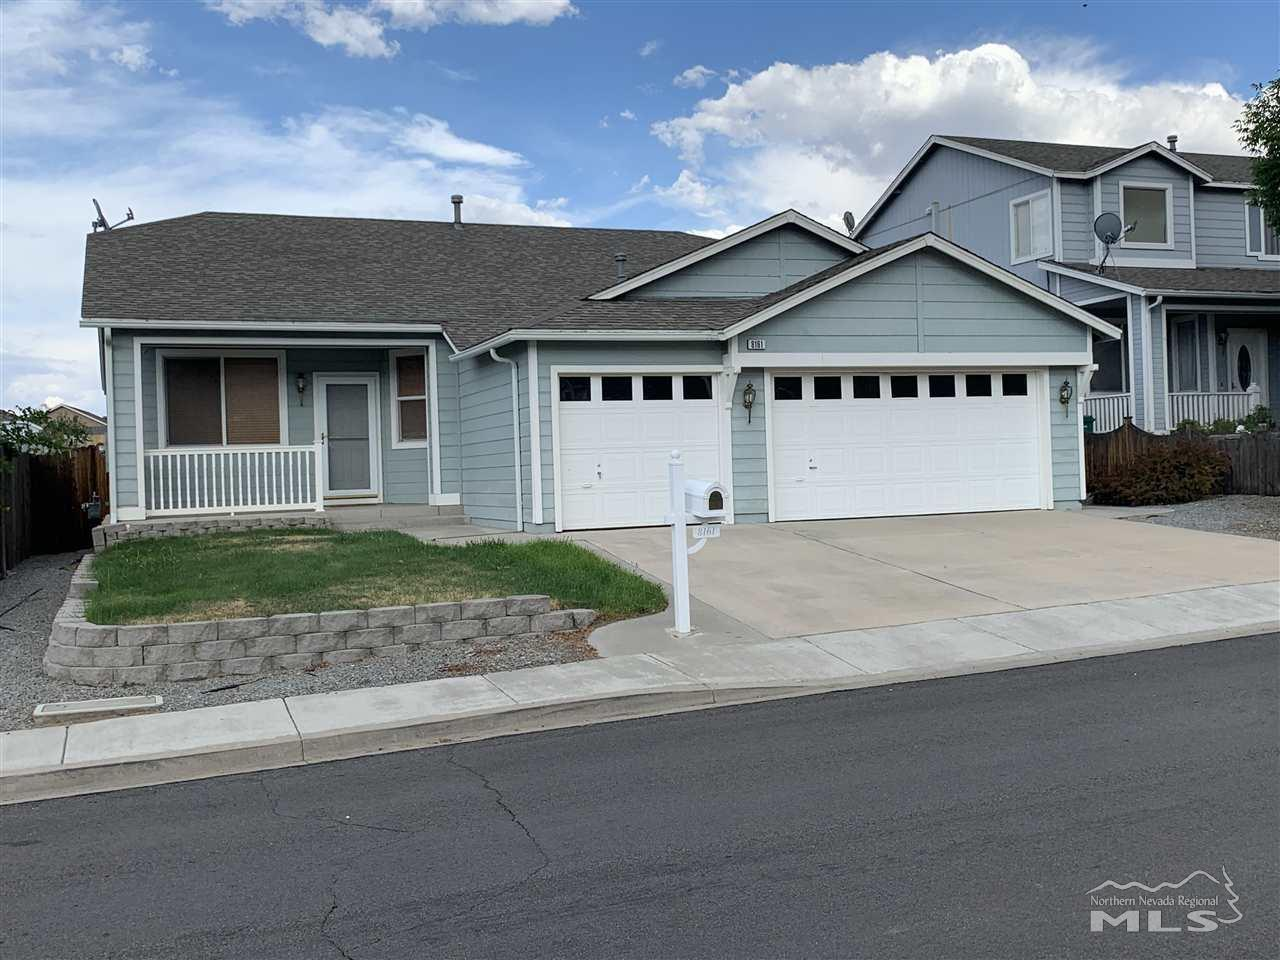 Image for 8161 Monterey Shores Dr, Reno, NV 89506